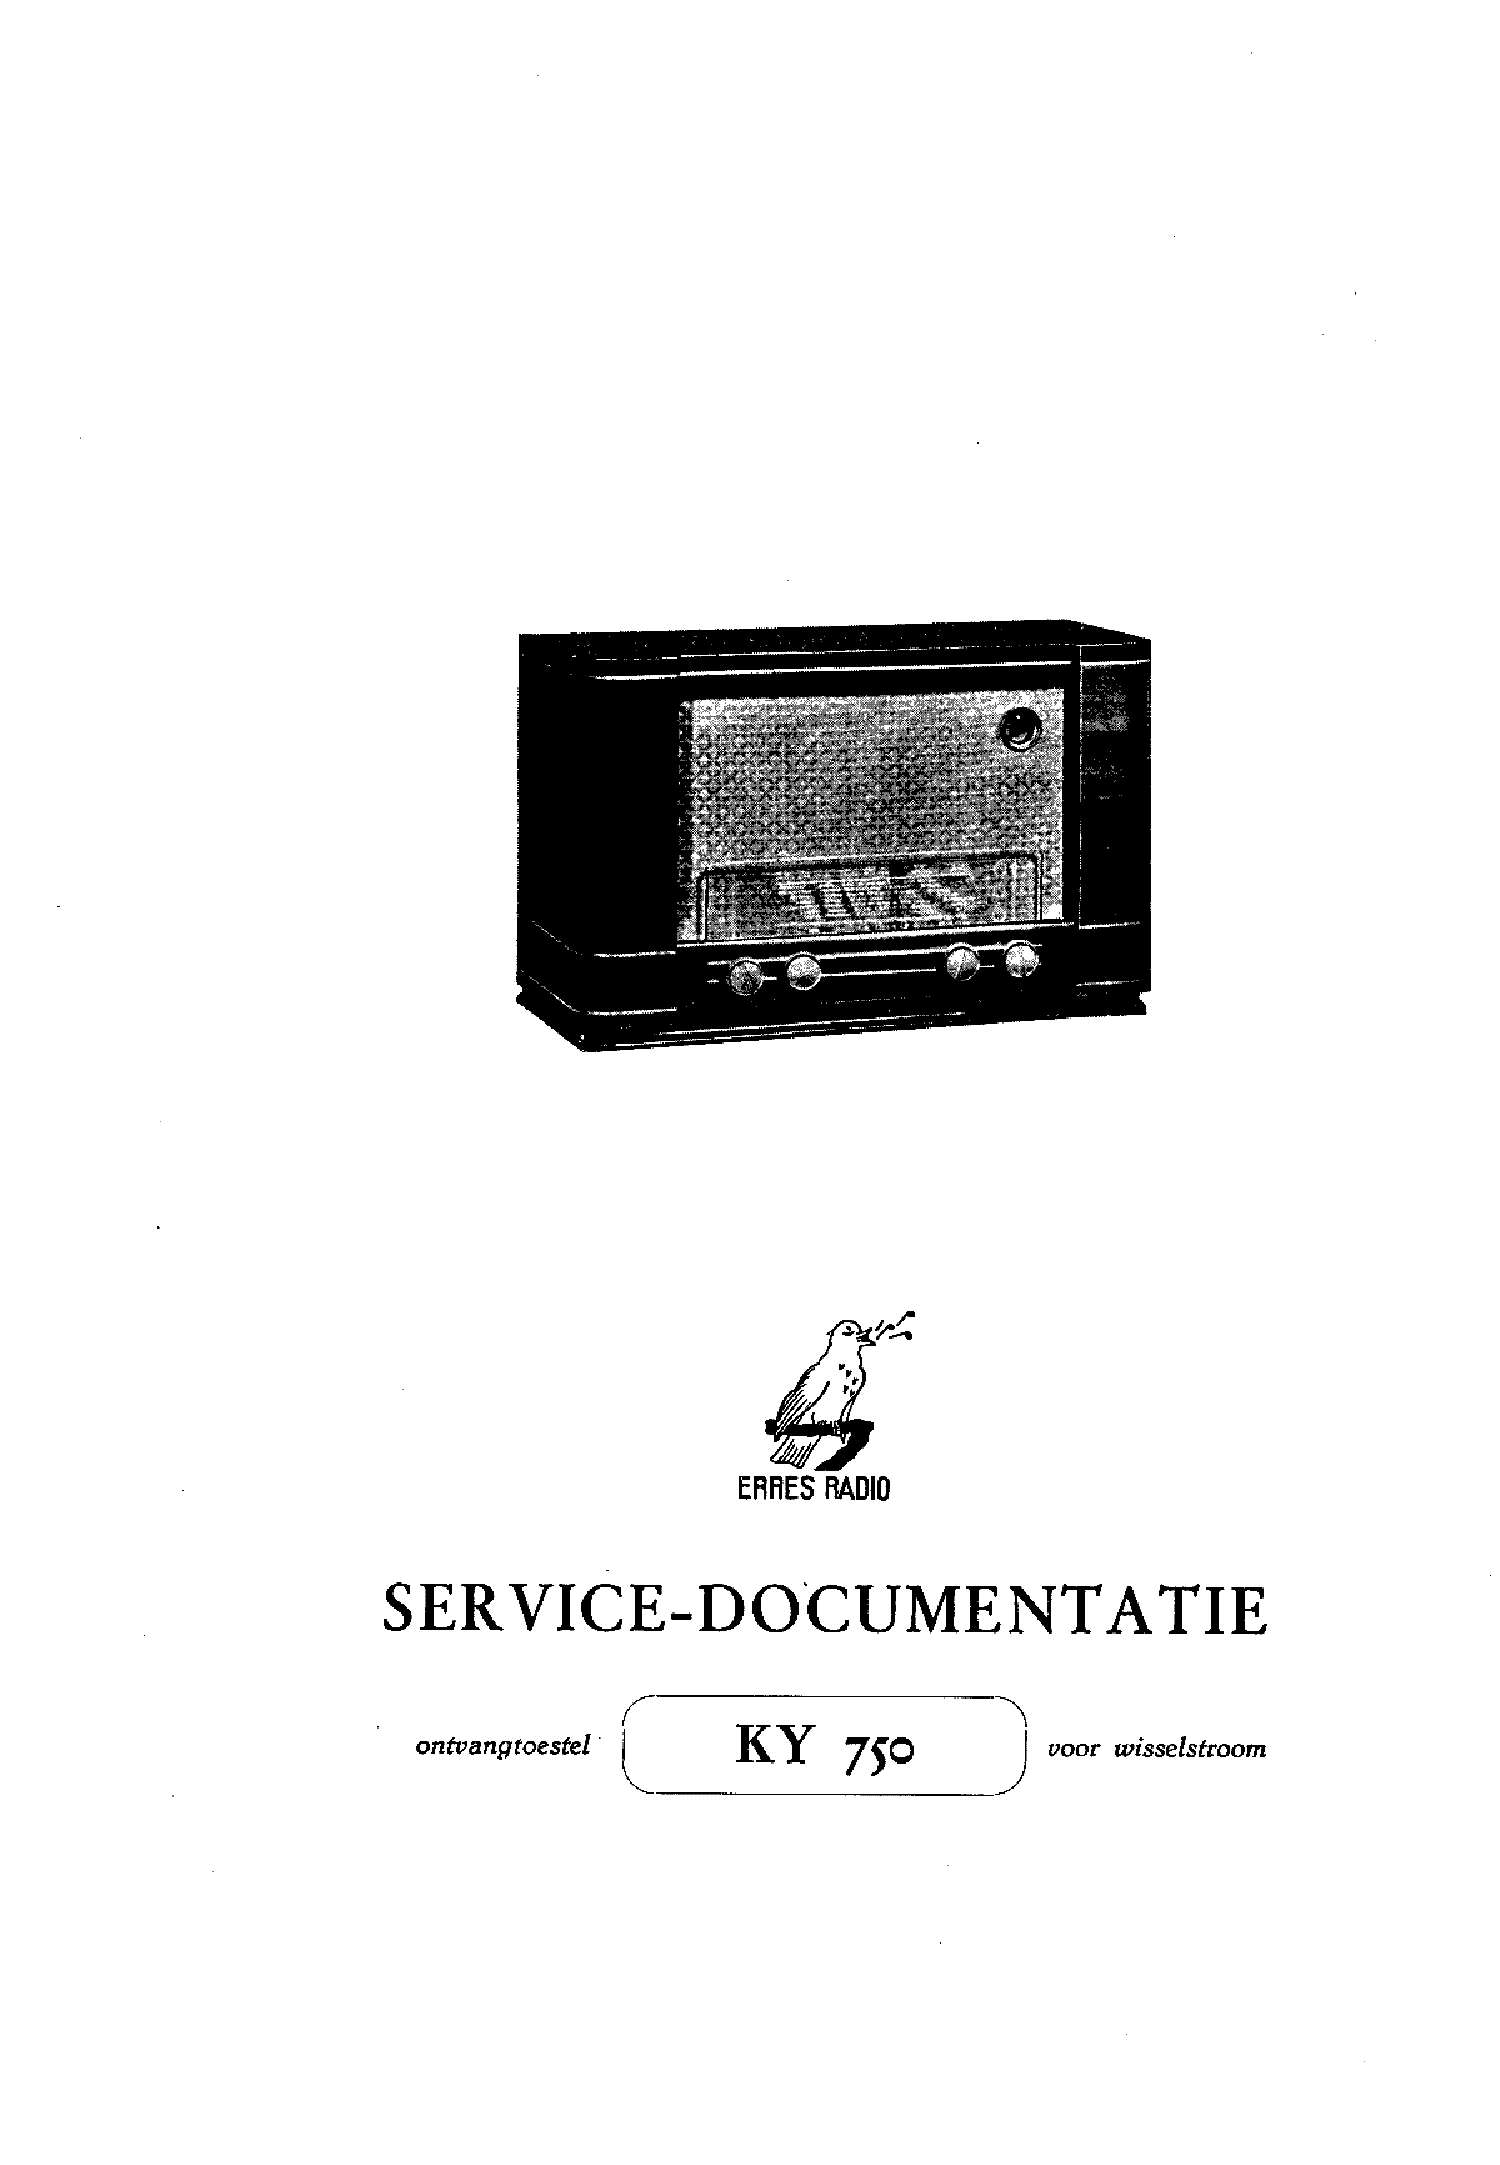 ERRES KY750 RADIO SCH service manual